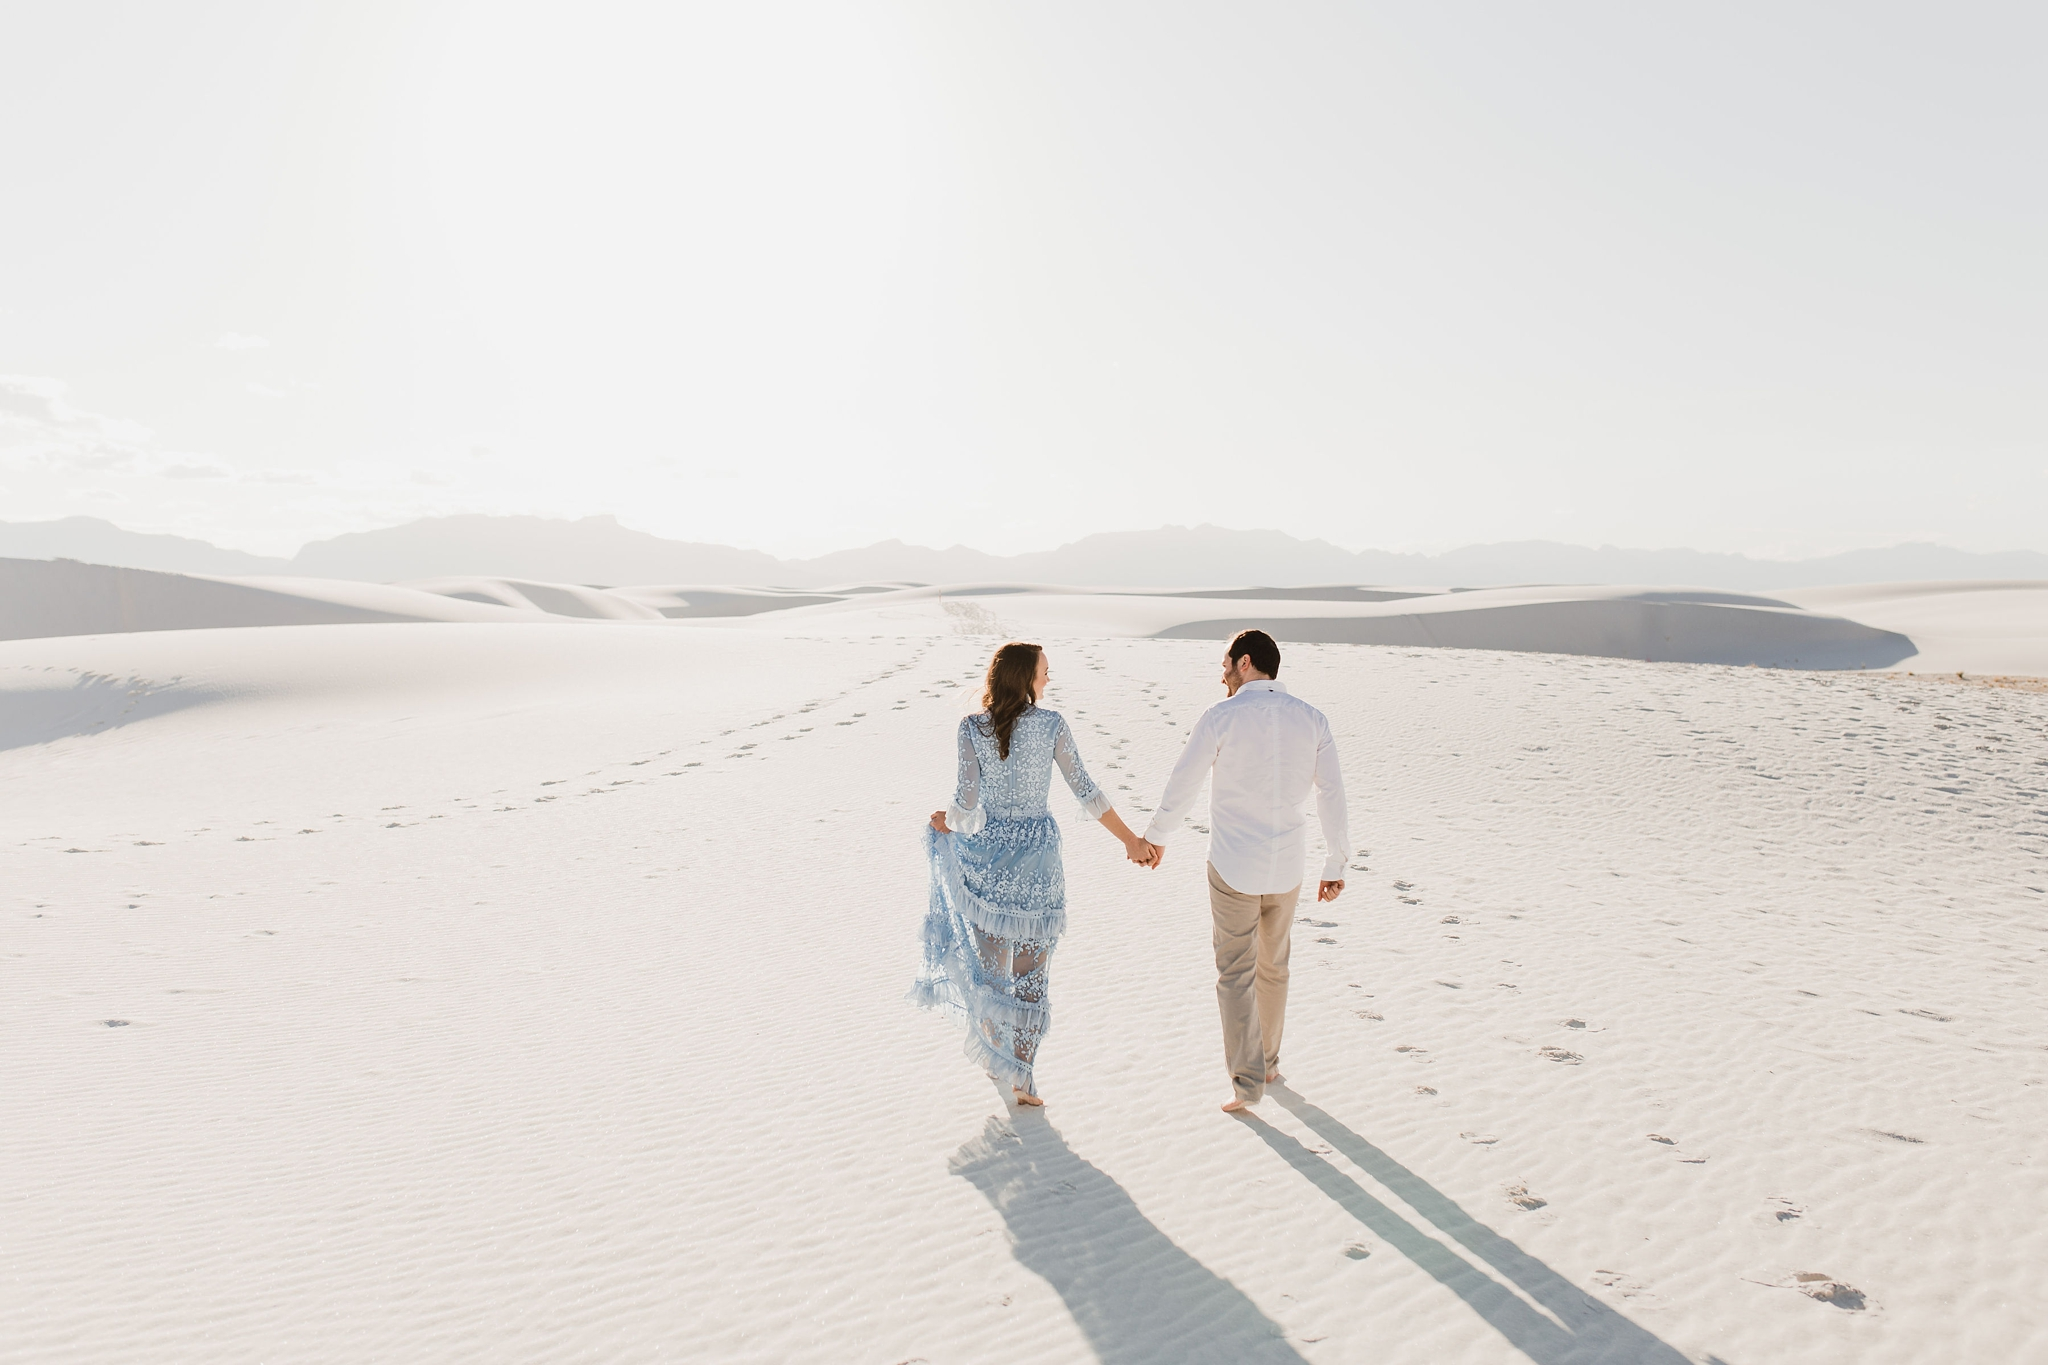 Alicia+lucia+photography+-+albuquerque+wedding+photographer+-+santa+fe+wedding+photography+-+new+mexico+wedding+photographer+-+new+mexico+wedding+-+new+mexico+engagement+-+white+sands+engagement+-+white+sands+national+monument_0012.jpg